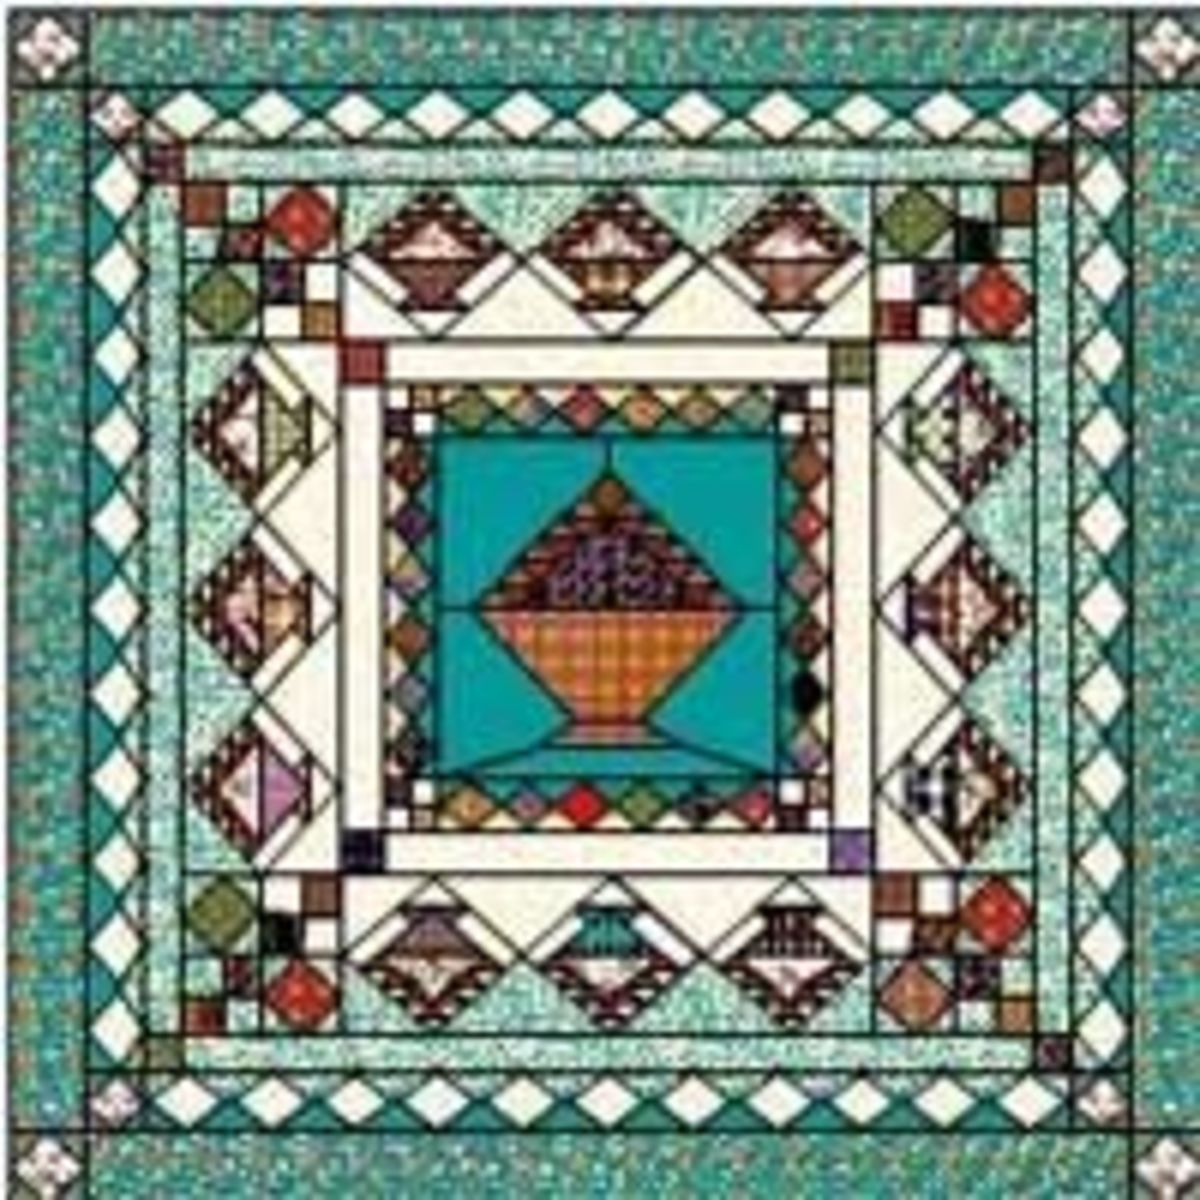 The basket quilt plan in early version of EQ